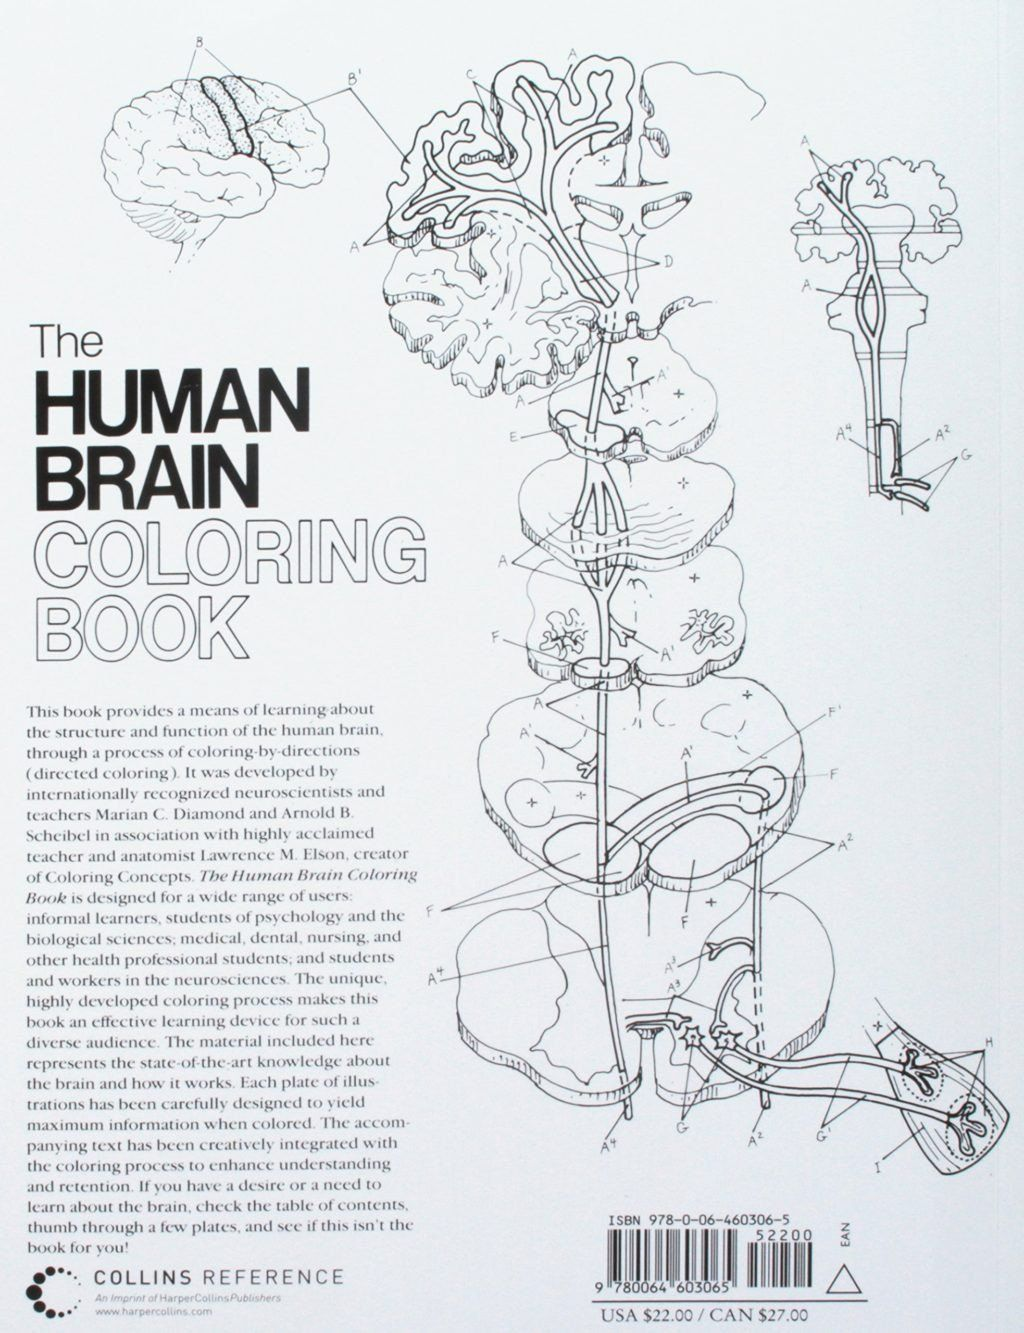 The Human Brain Coloring Book Luxury Saunders Veterinary Anatomy Coloring Book Answers Pdf Free In 2020 Coloring Books Anatomy Coloring Book Star Wars Coloring Book [ 1333 x 1024 Pixel ]